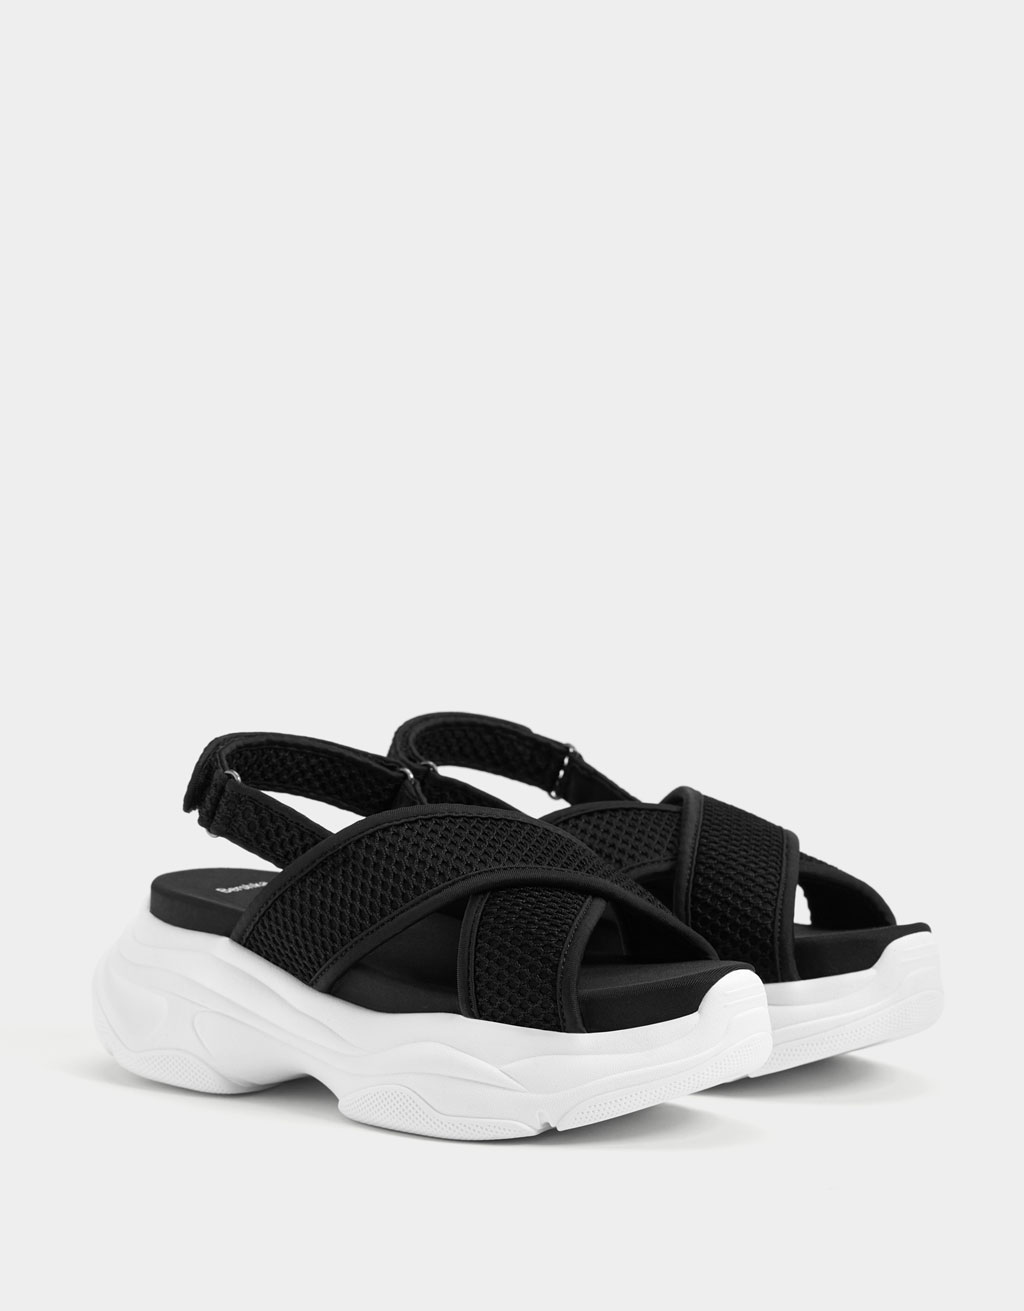 ff9f742ed Flat Sandals - Shoes - COLLECTION - WOMEN - Bershka Greece